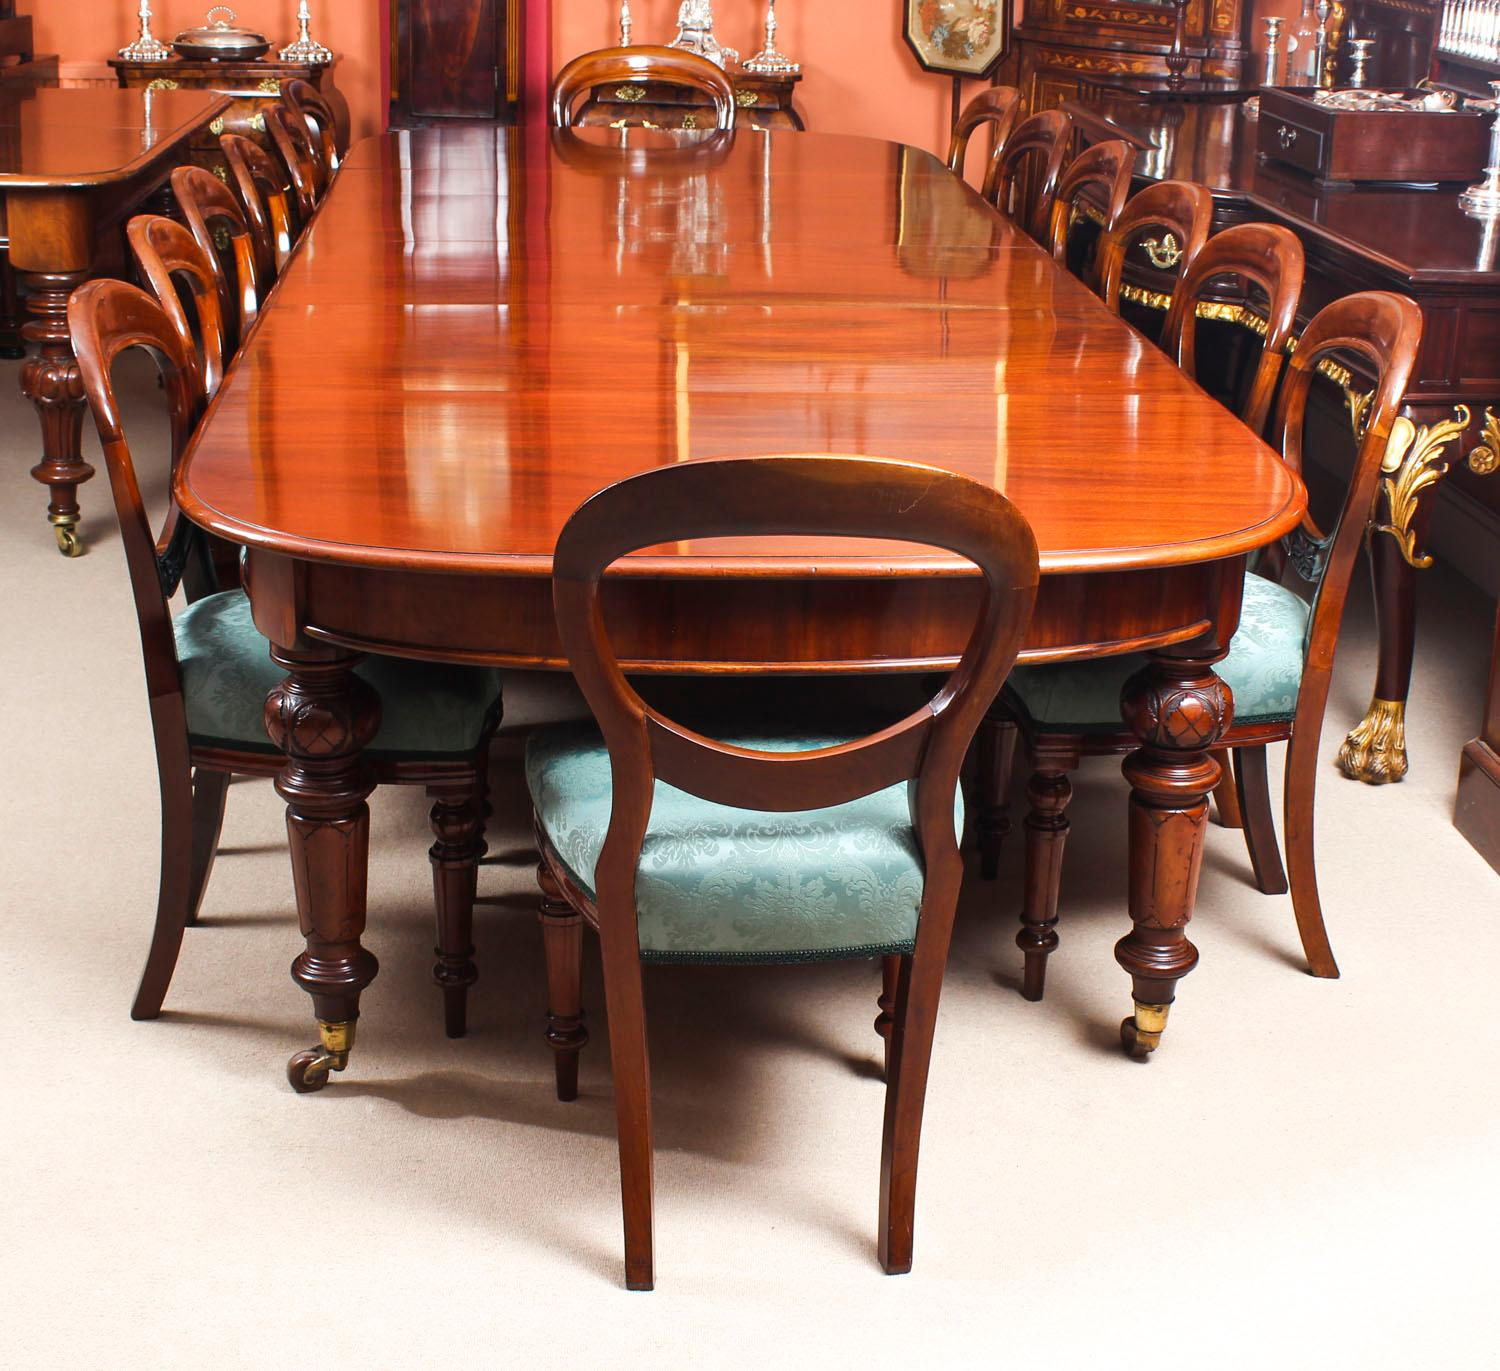 Bon Antique Victorian D End Mahogany Dining Table And 14 Chairs, 19th Century